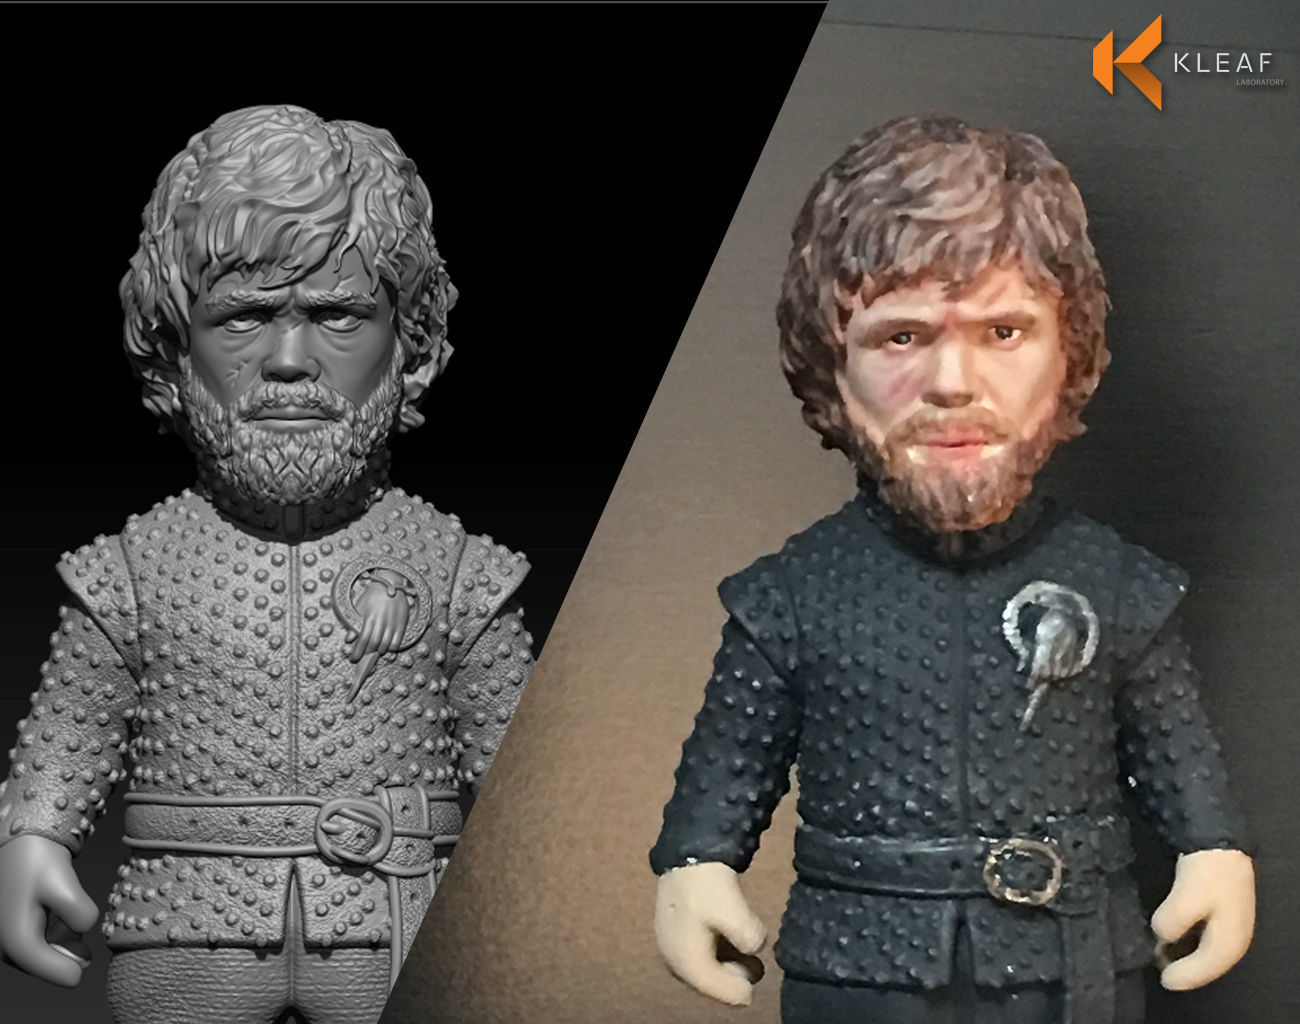 Game of Thrones - Tyrion Lannister